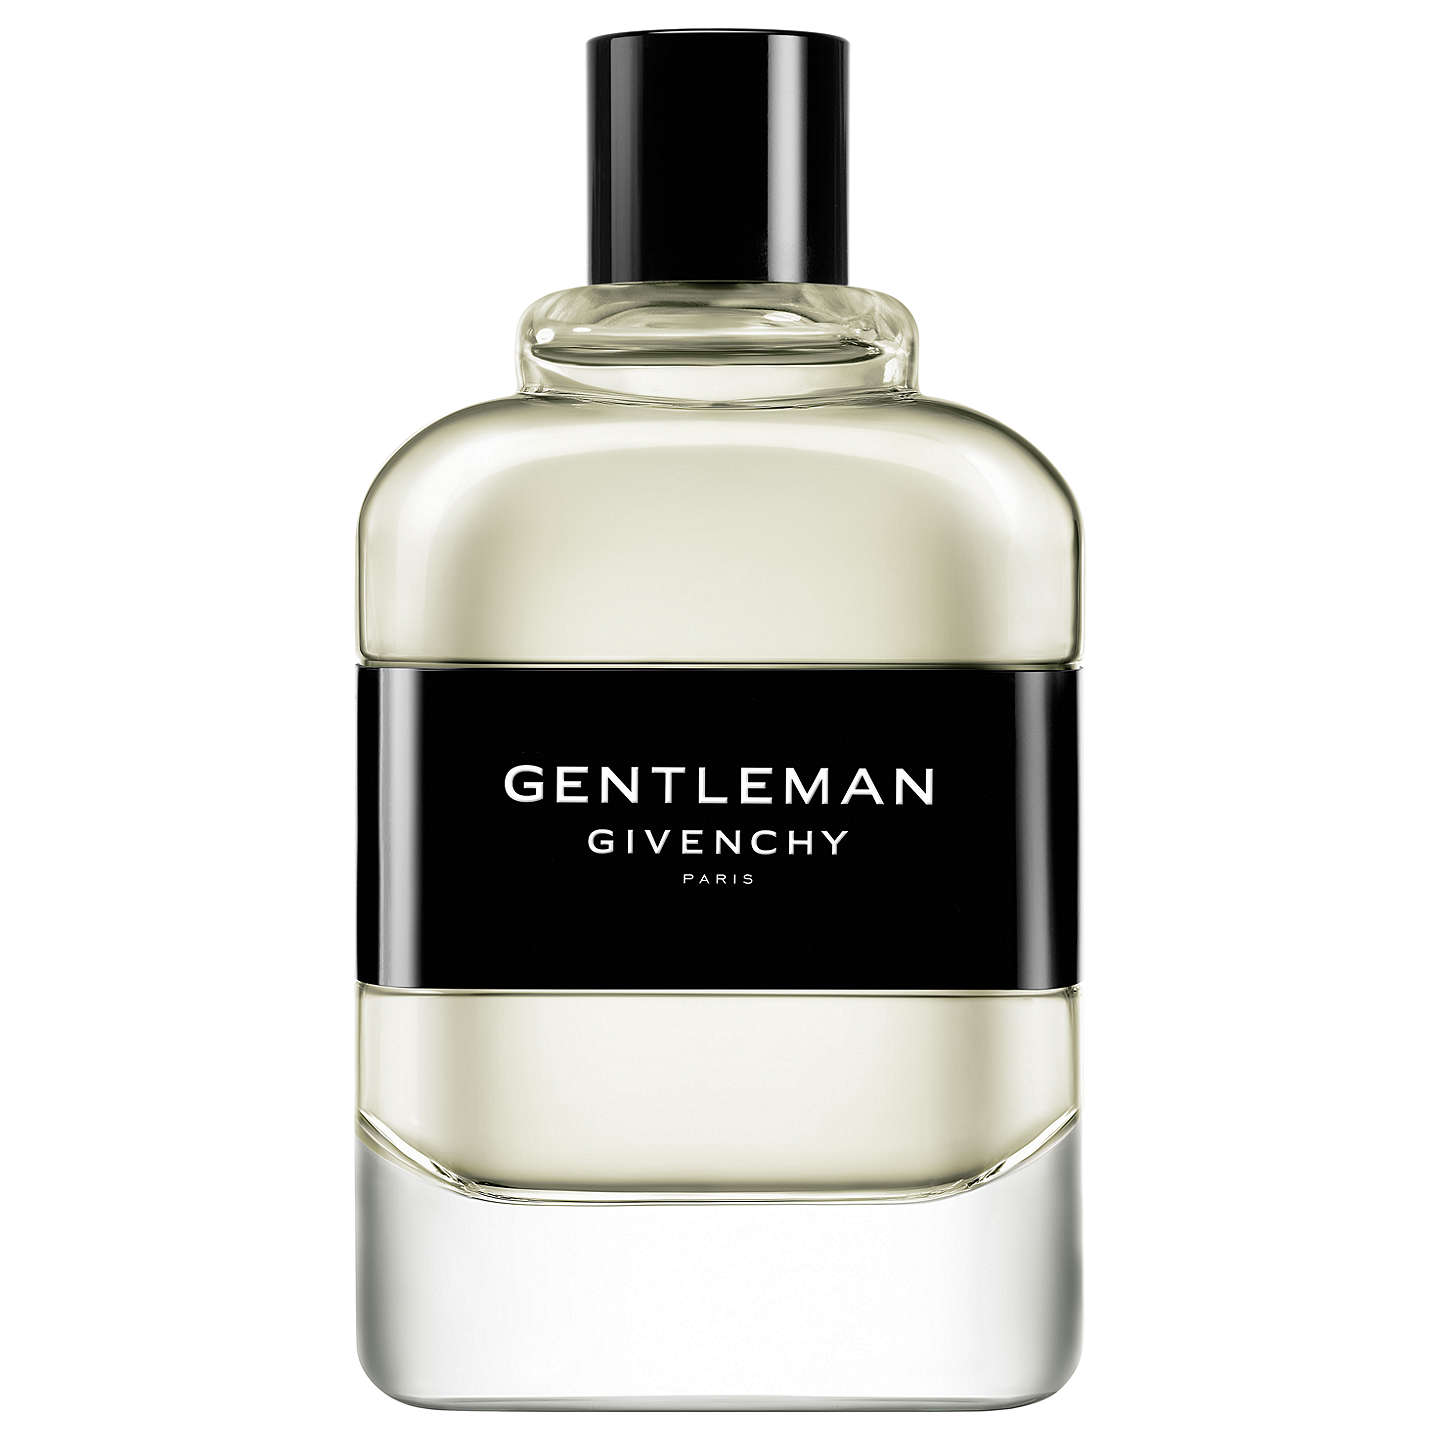 BuyGivenchy Gentleman Eau de Toilette, 100ml Online at johnlewis.com